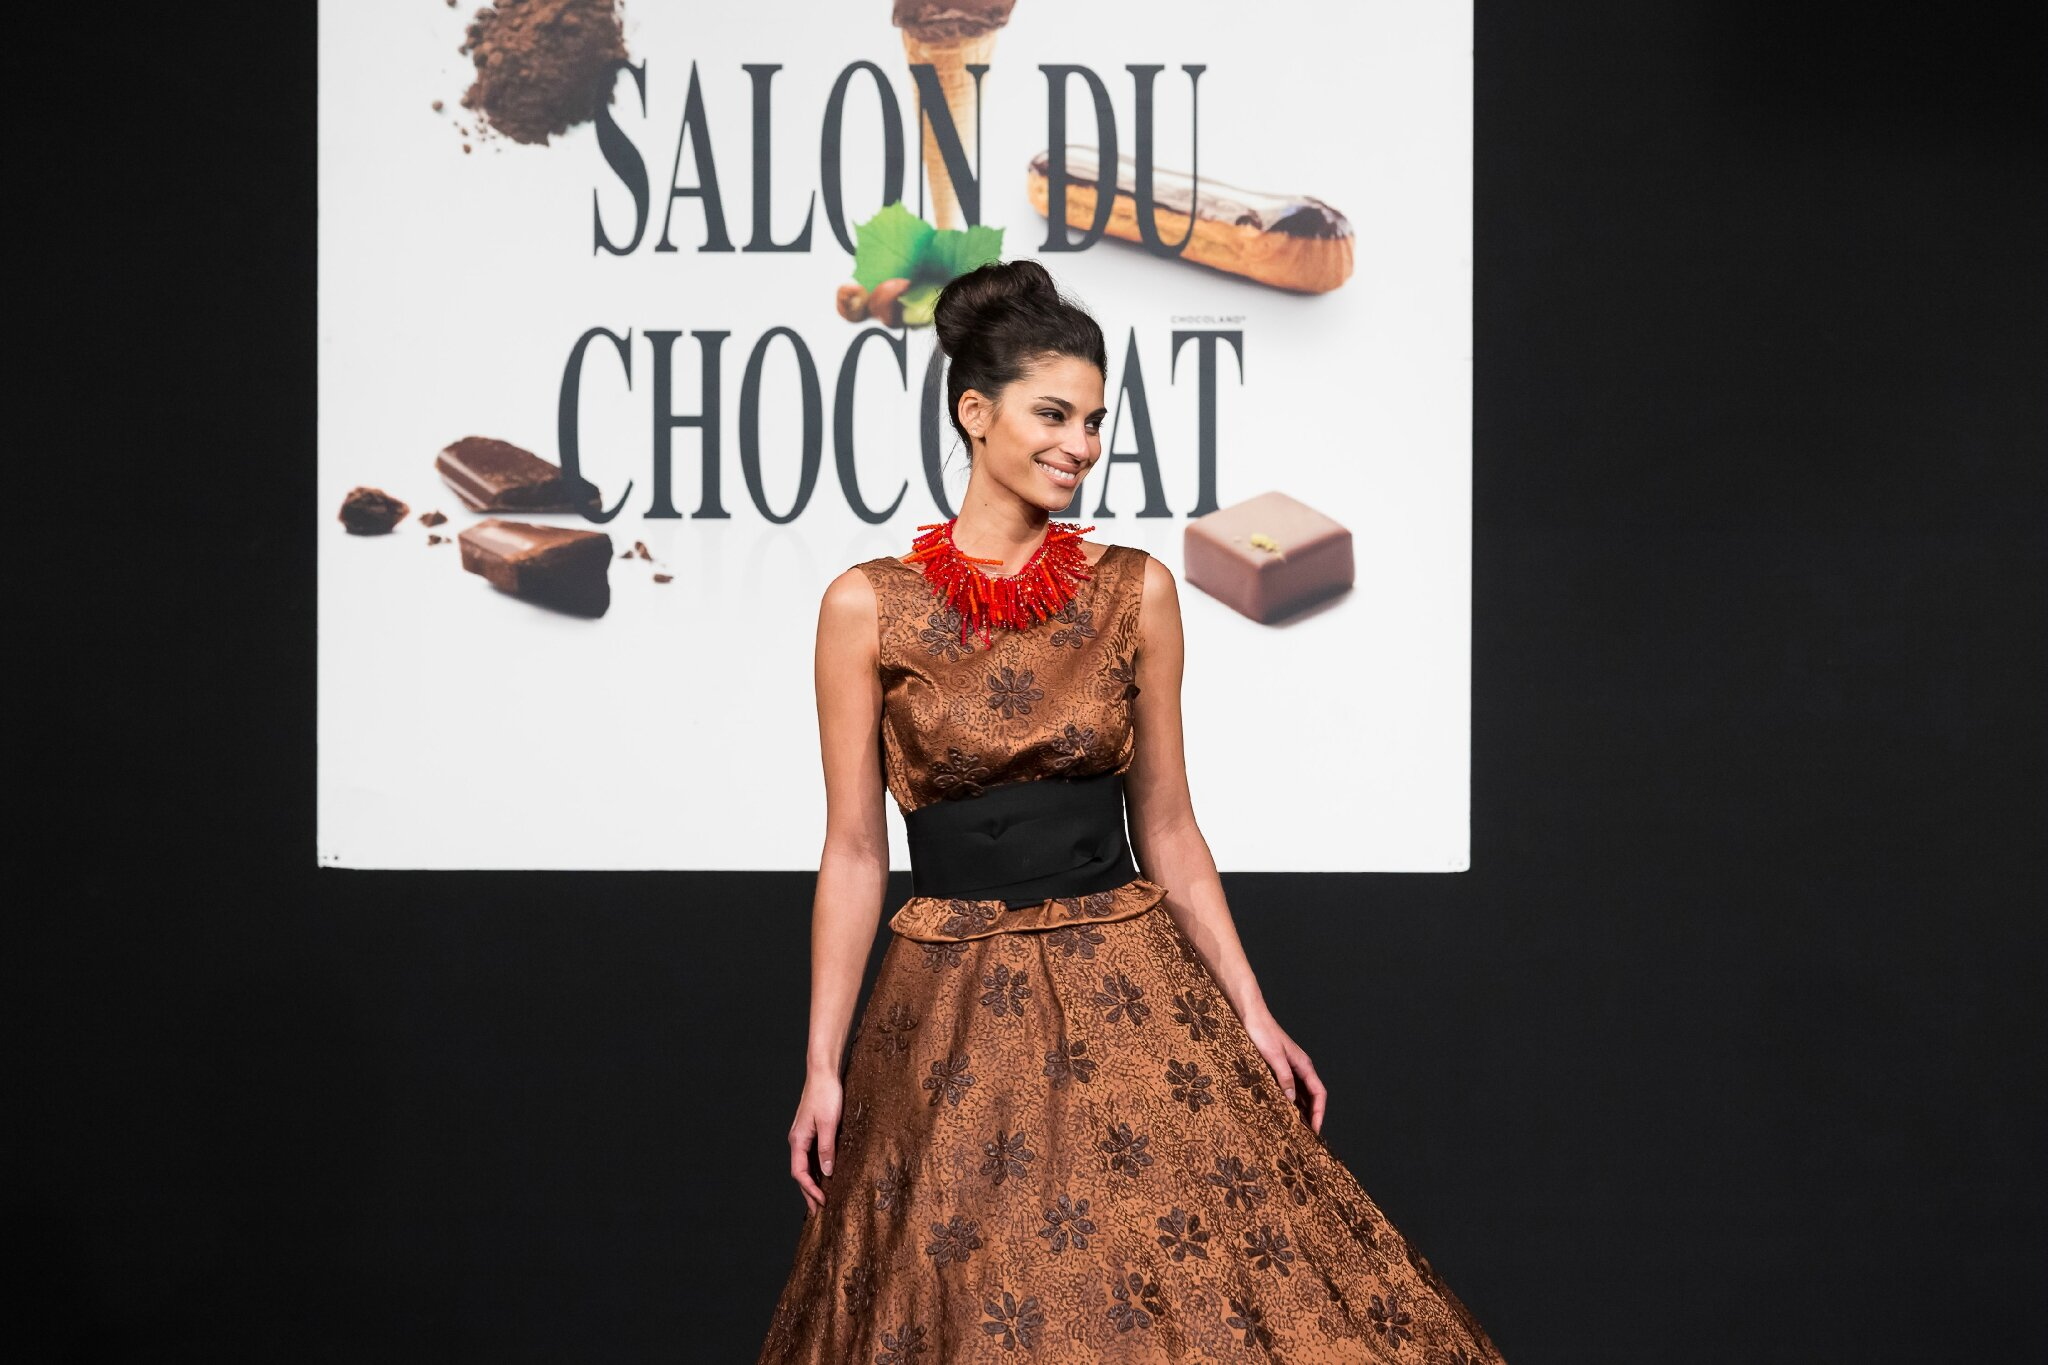 Salon du chocolat 2016 : Les plus belles photos